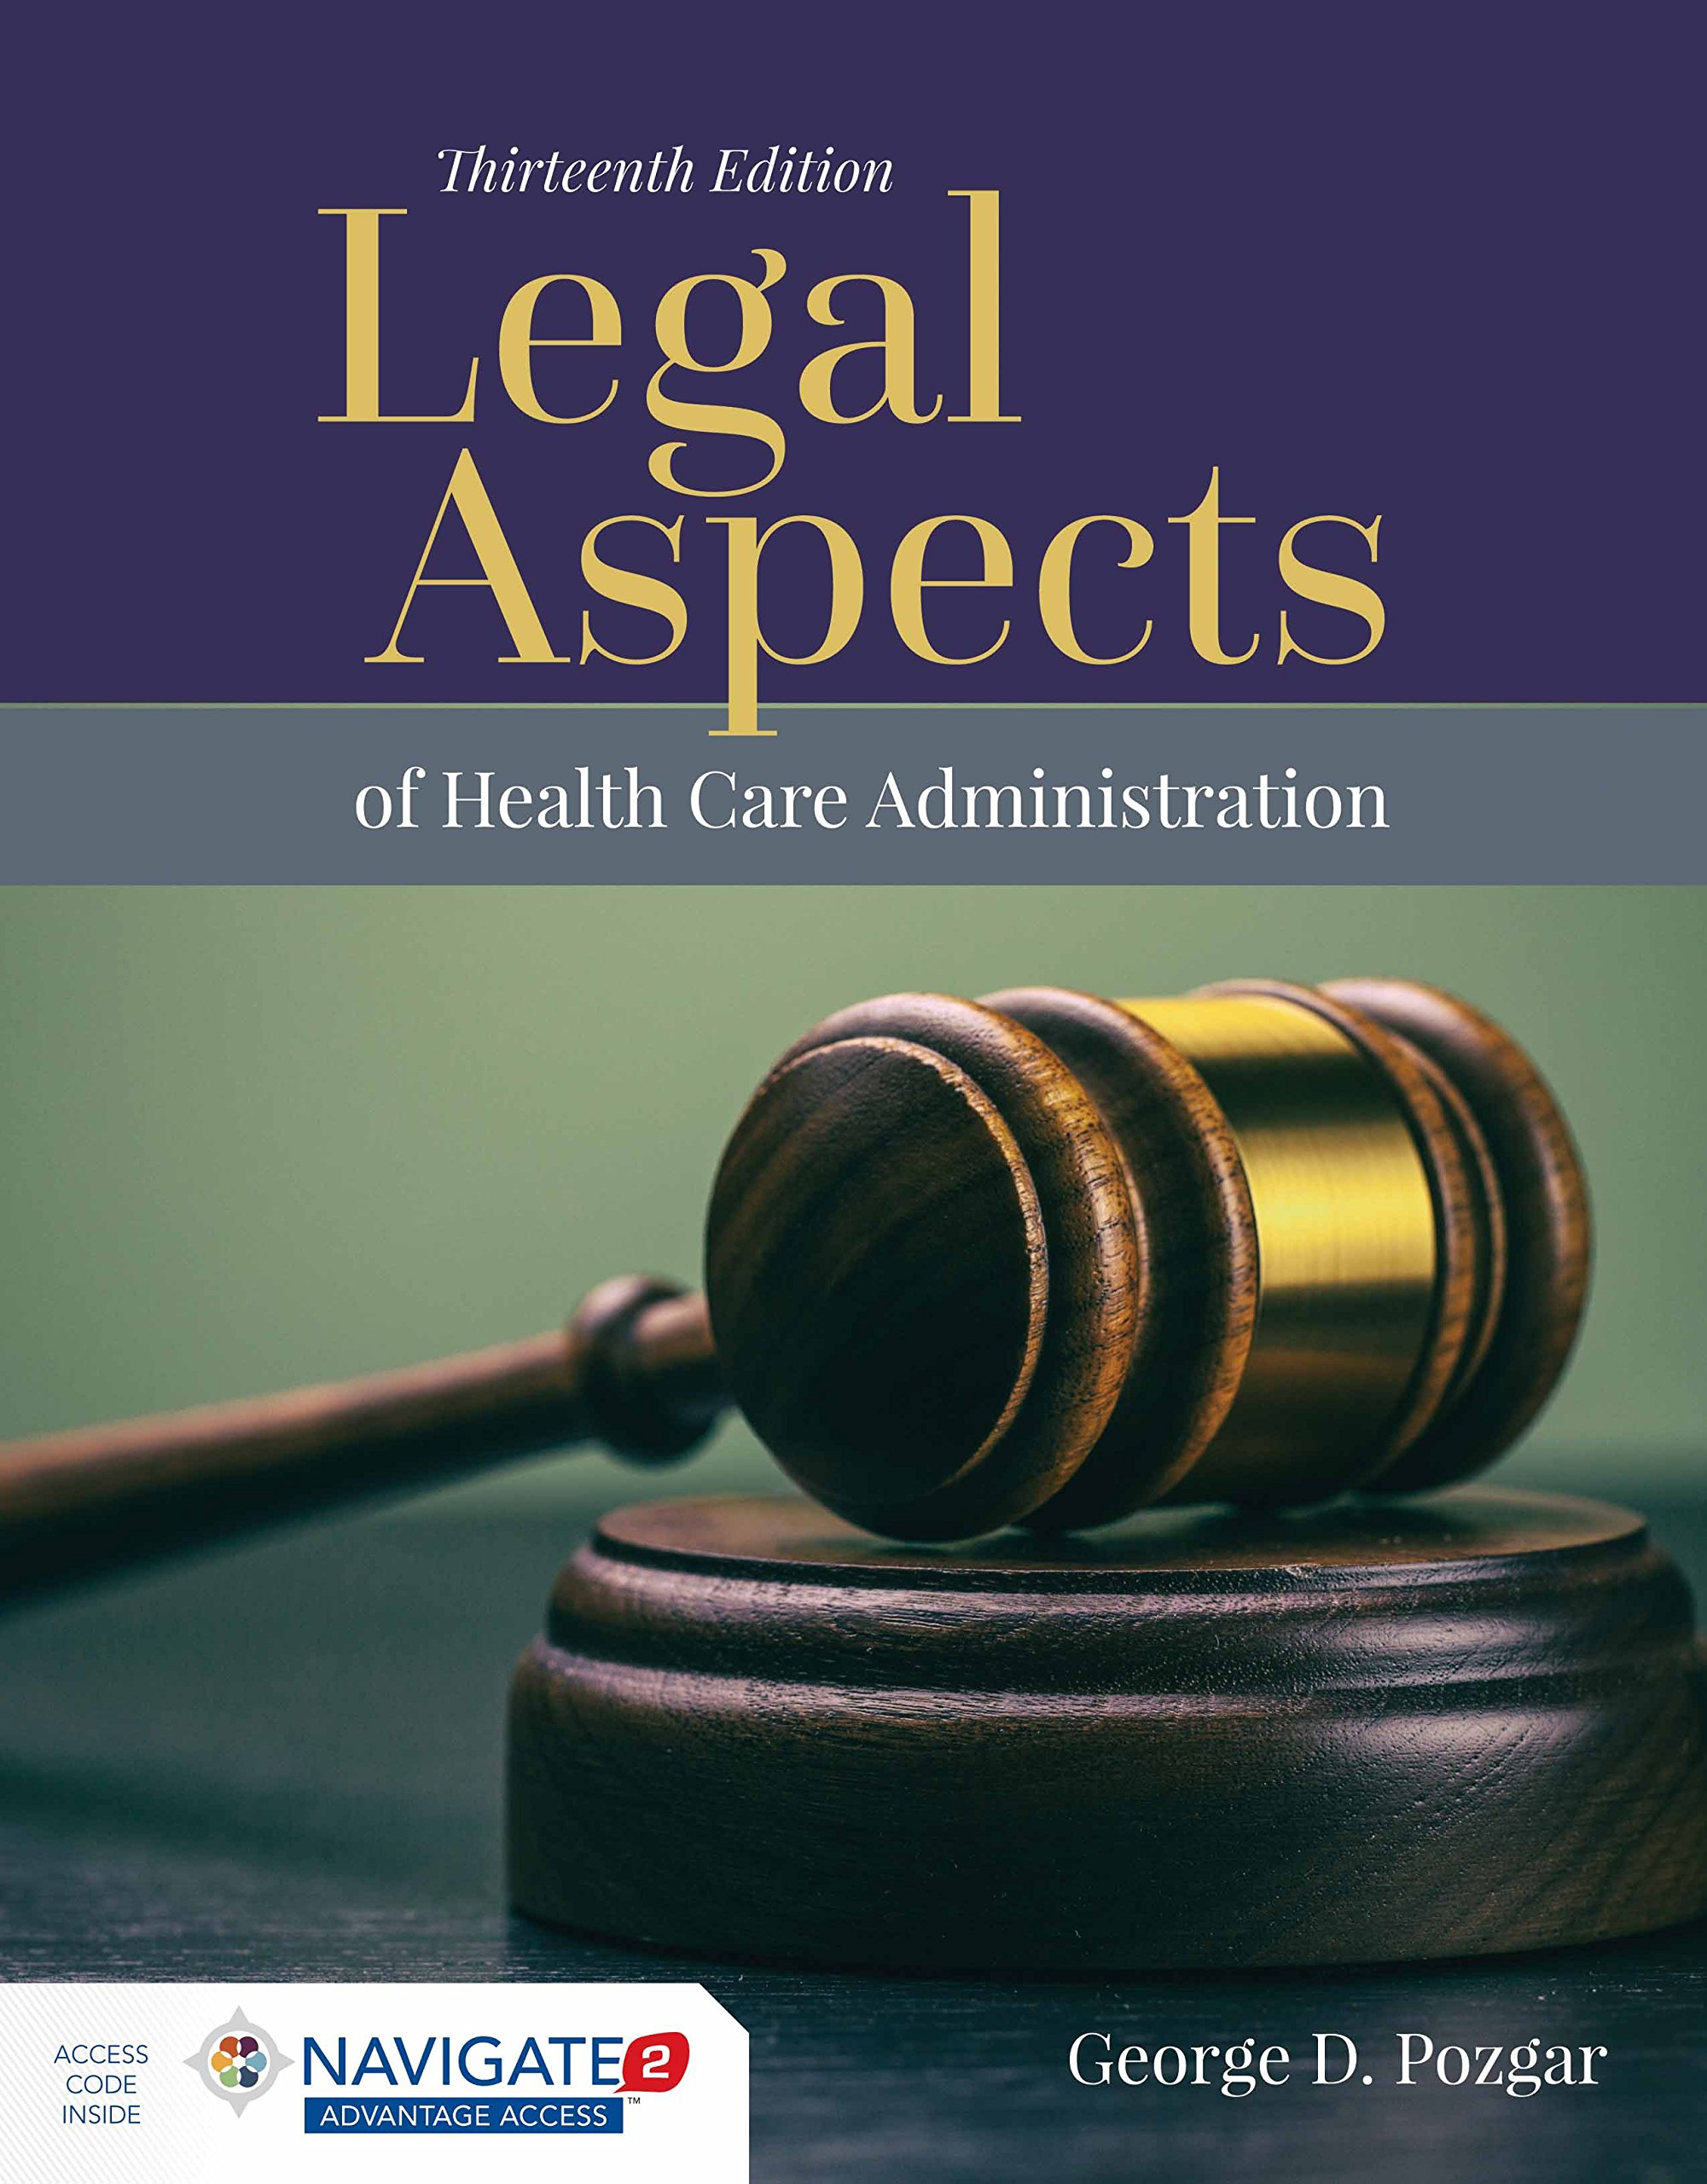 Legal Aspects of Health Care Administration by Jones & Bartlett Learning